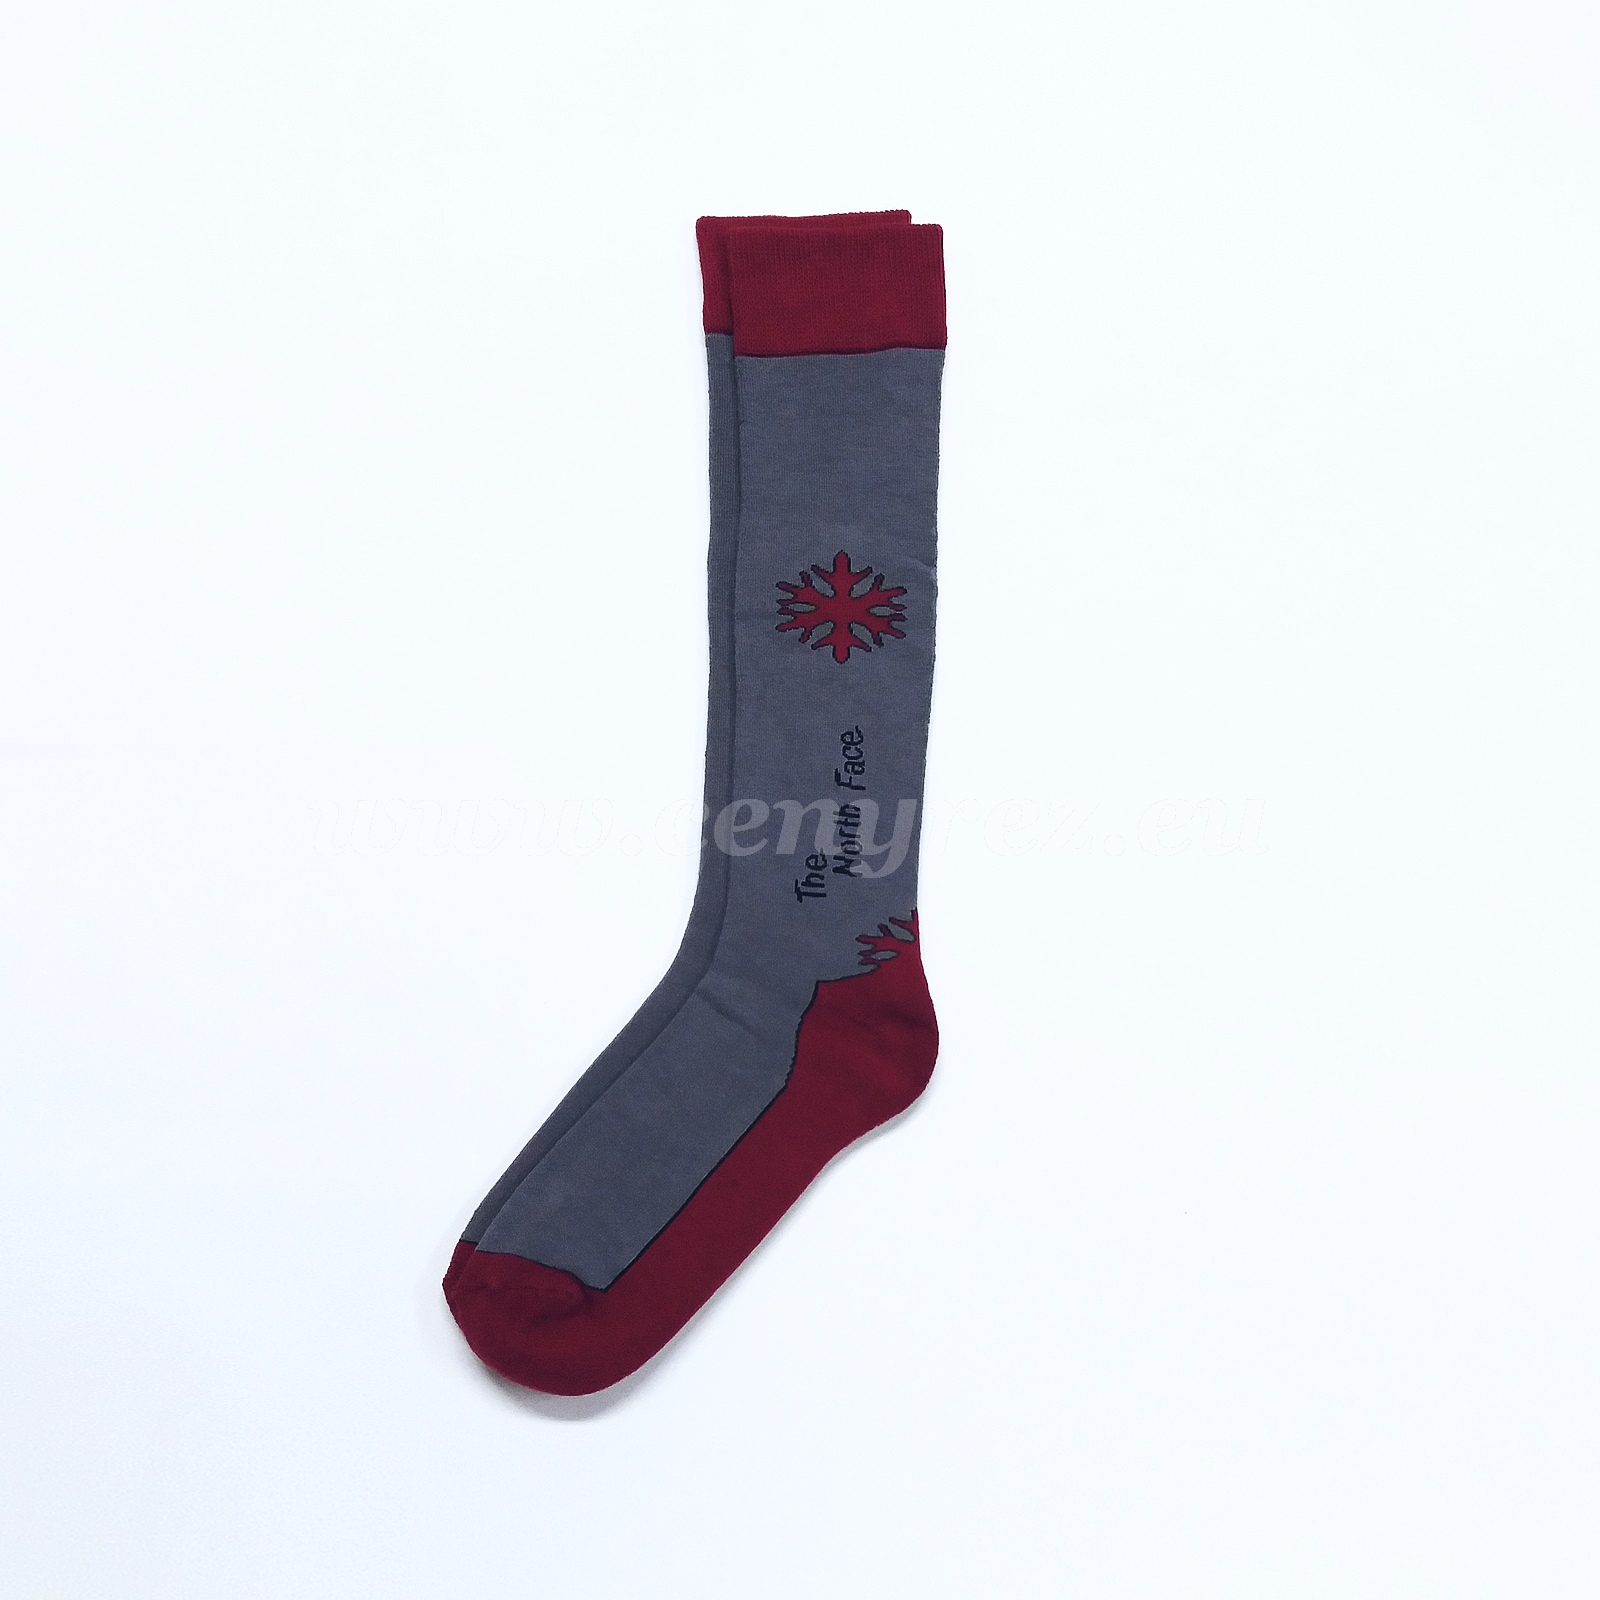 Terry Knee Socks SNOWFLAKE - dark gray